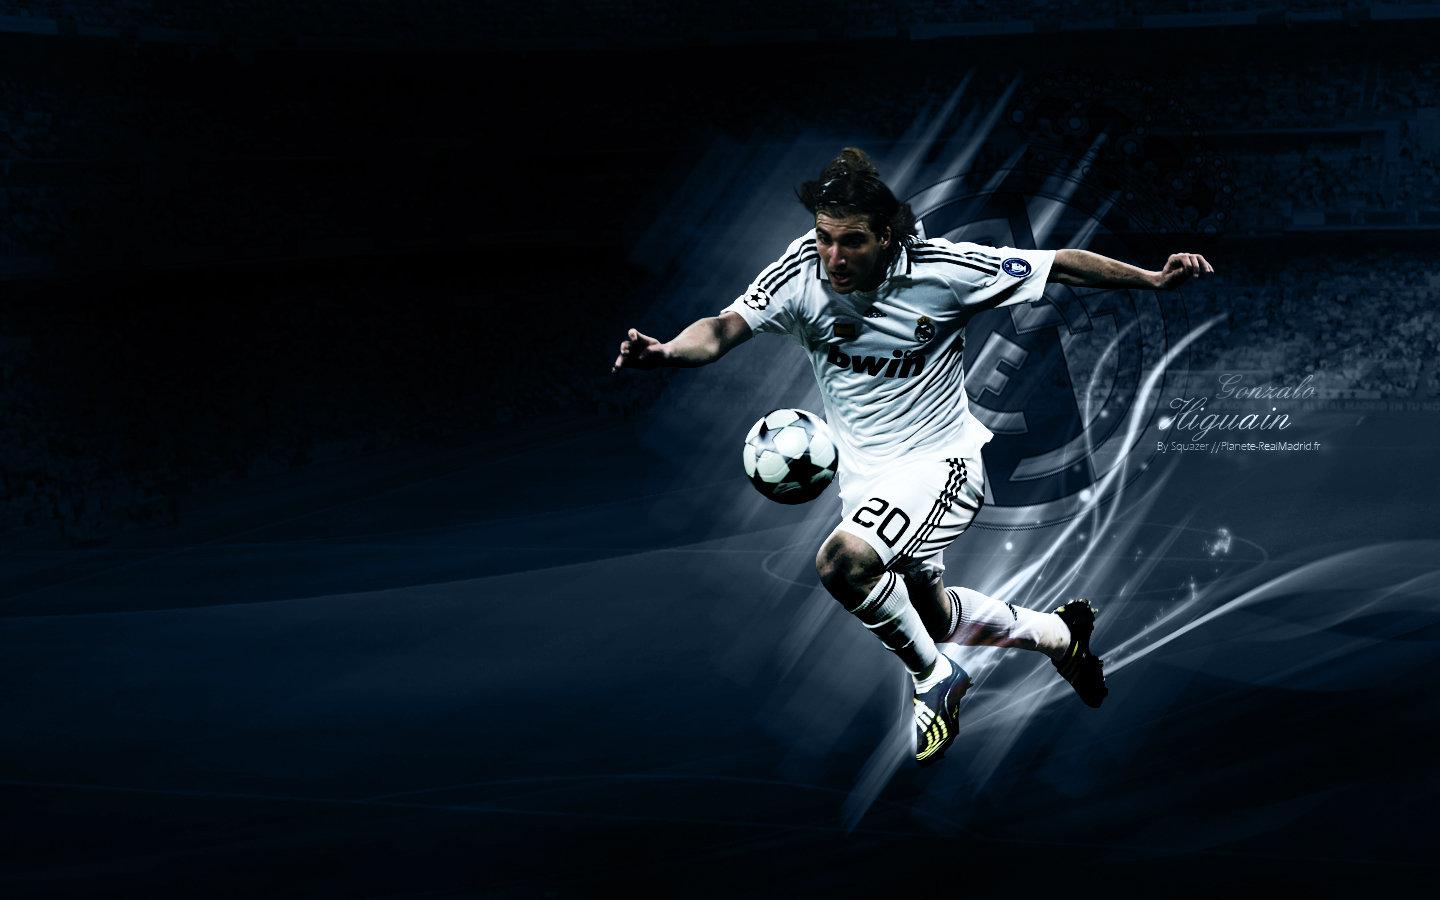 Real Madrid Wallpaper Hd 2018 For Android Apk Download